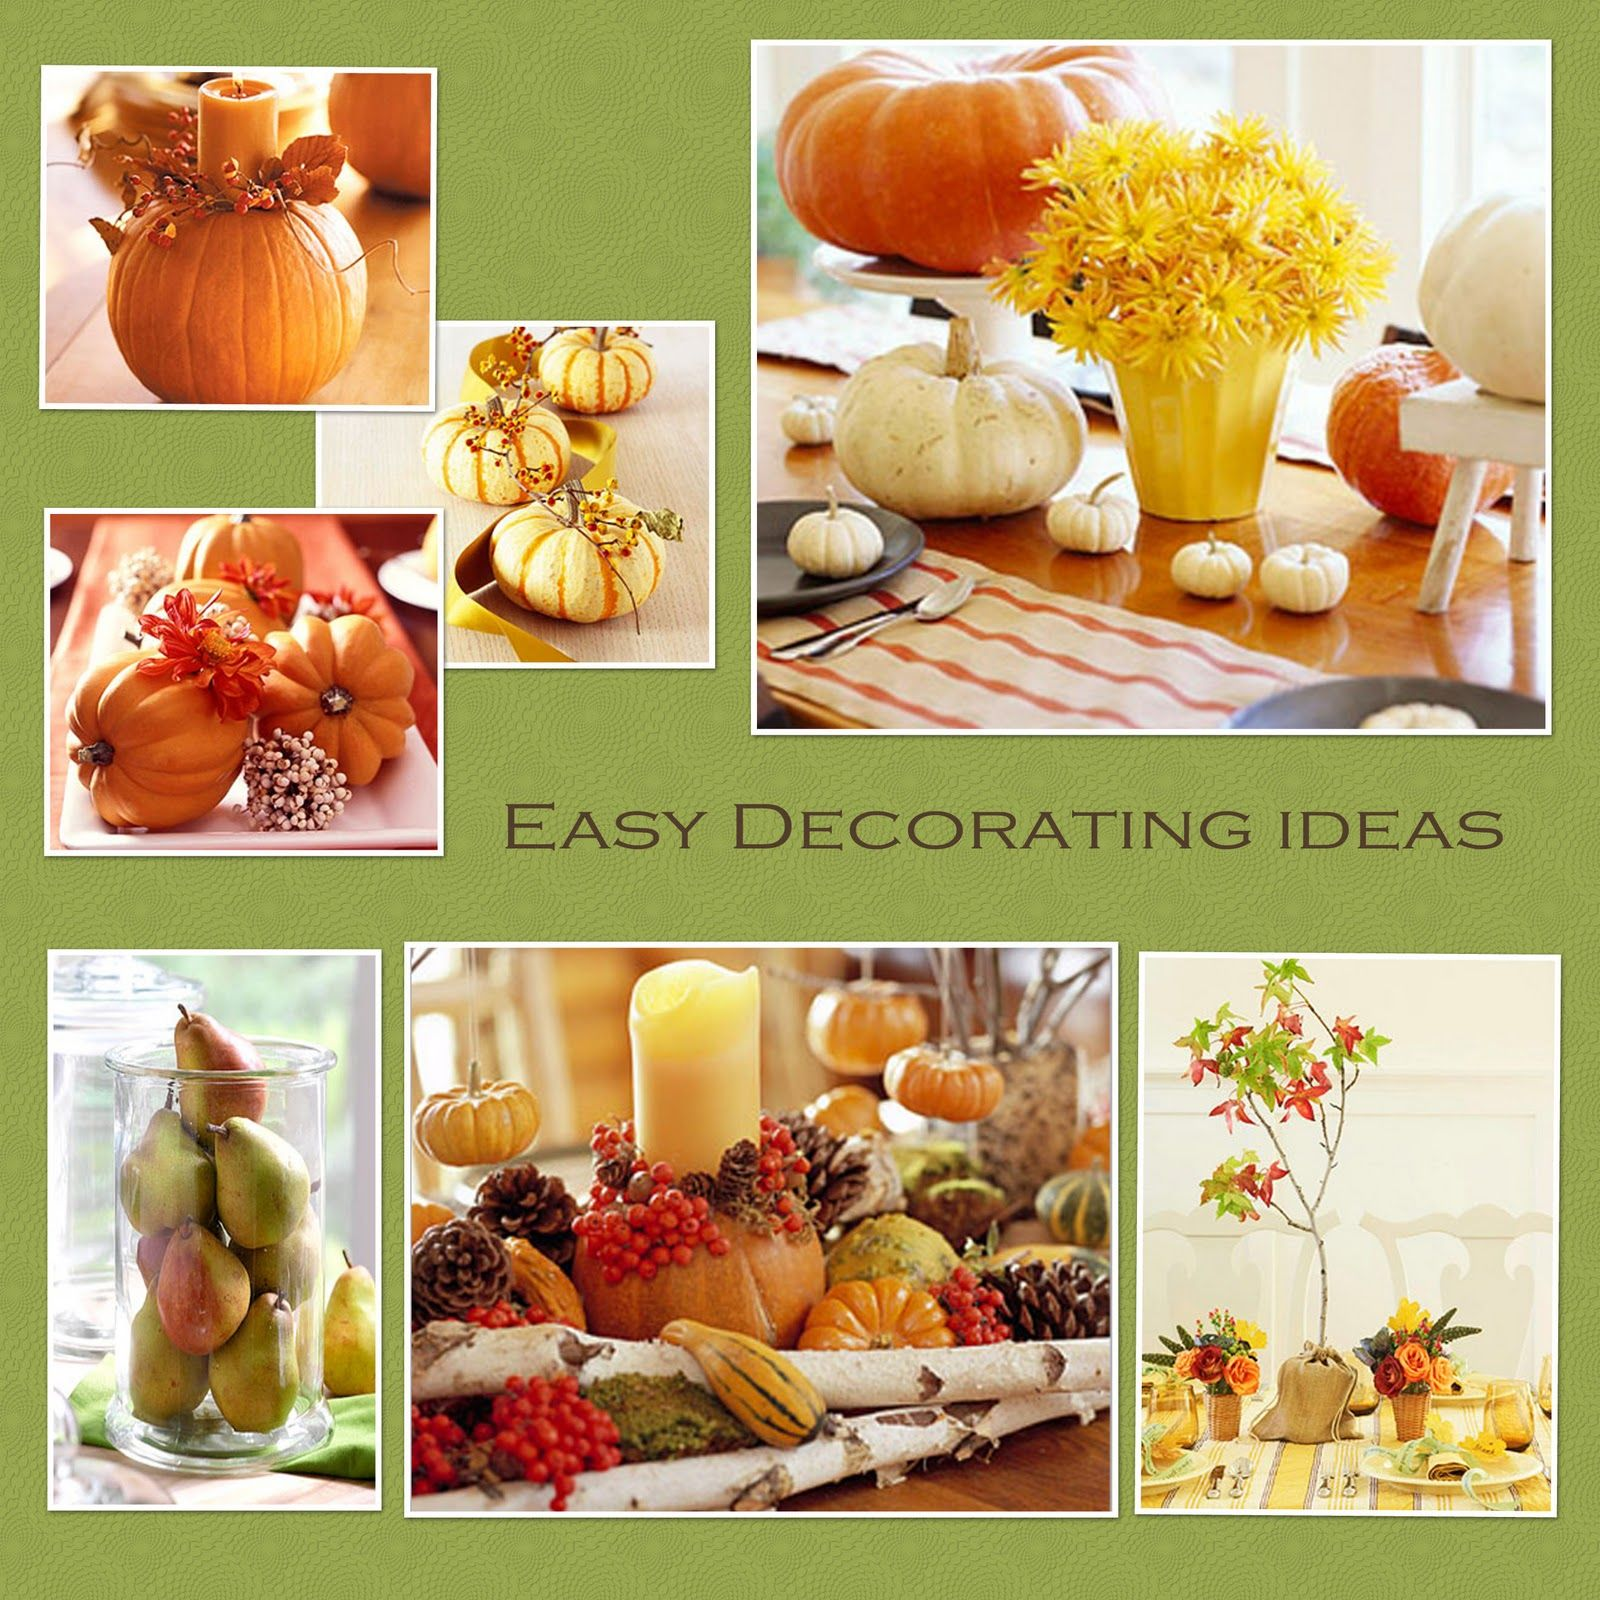 Decoration ideas for thanksgiving party - Decoration Ideas  sc 1 st  Pinterest : thanksgiving party decoration ideas - www.pureclipart.com